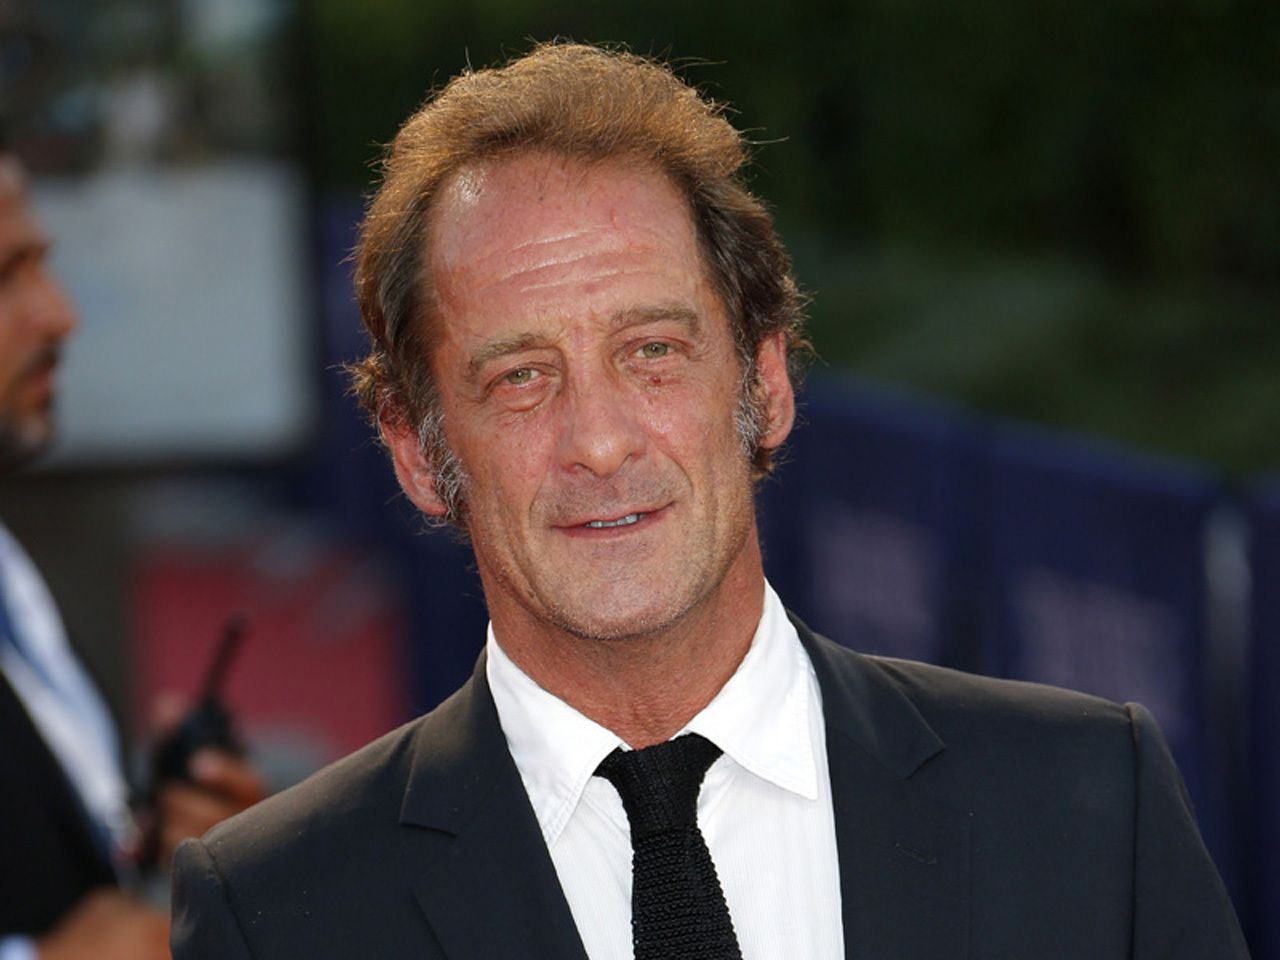 Tips: Vincent Lindon, 2018s alternative hair style of the cool friendly  director